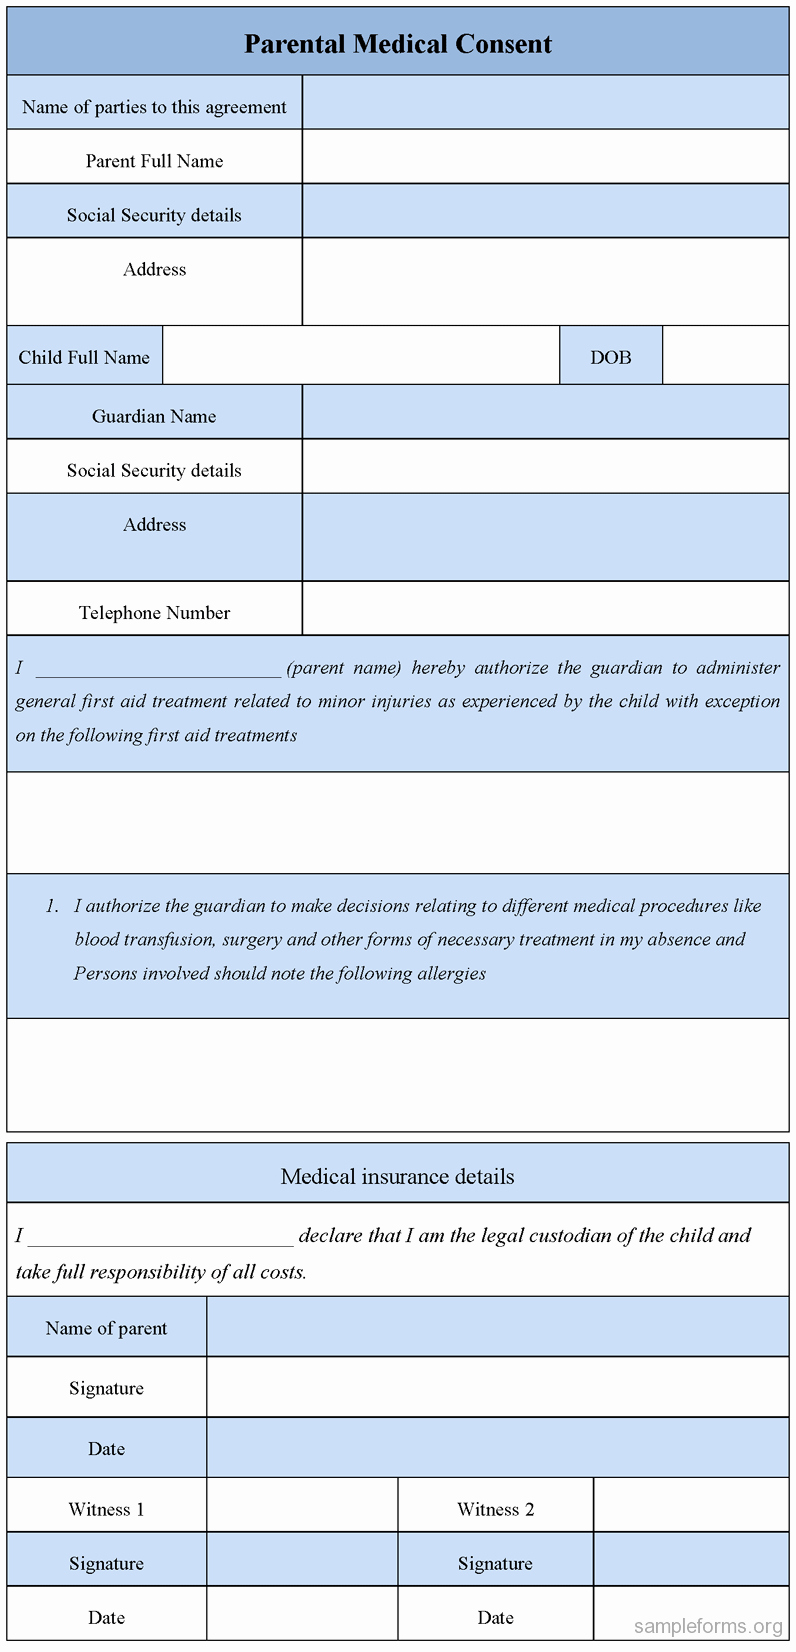 Parent Consent forms Template Best Of Parental Medical Consent form Sample forms